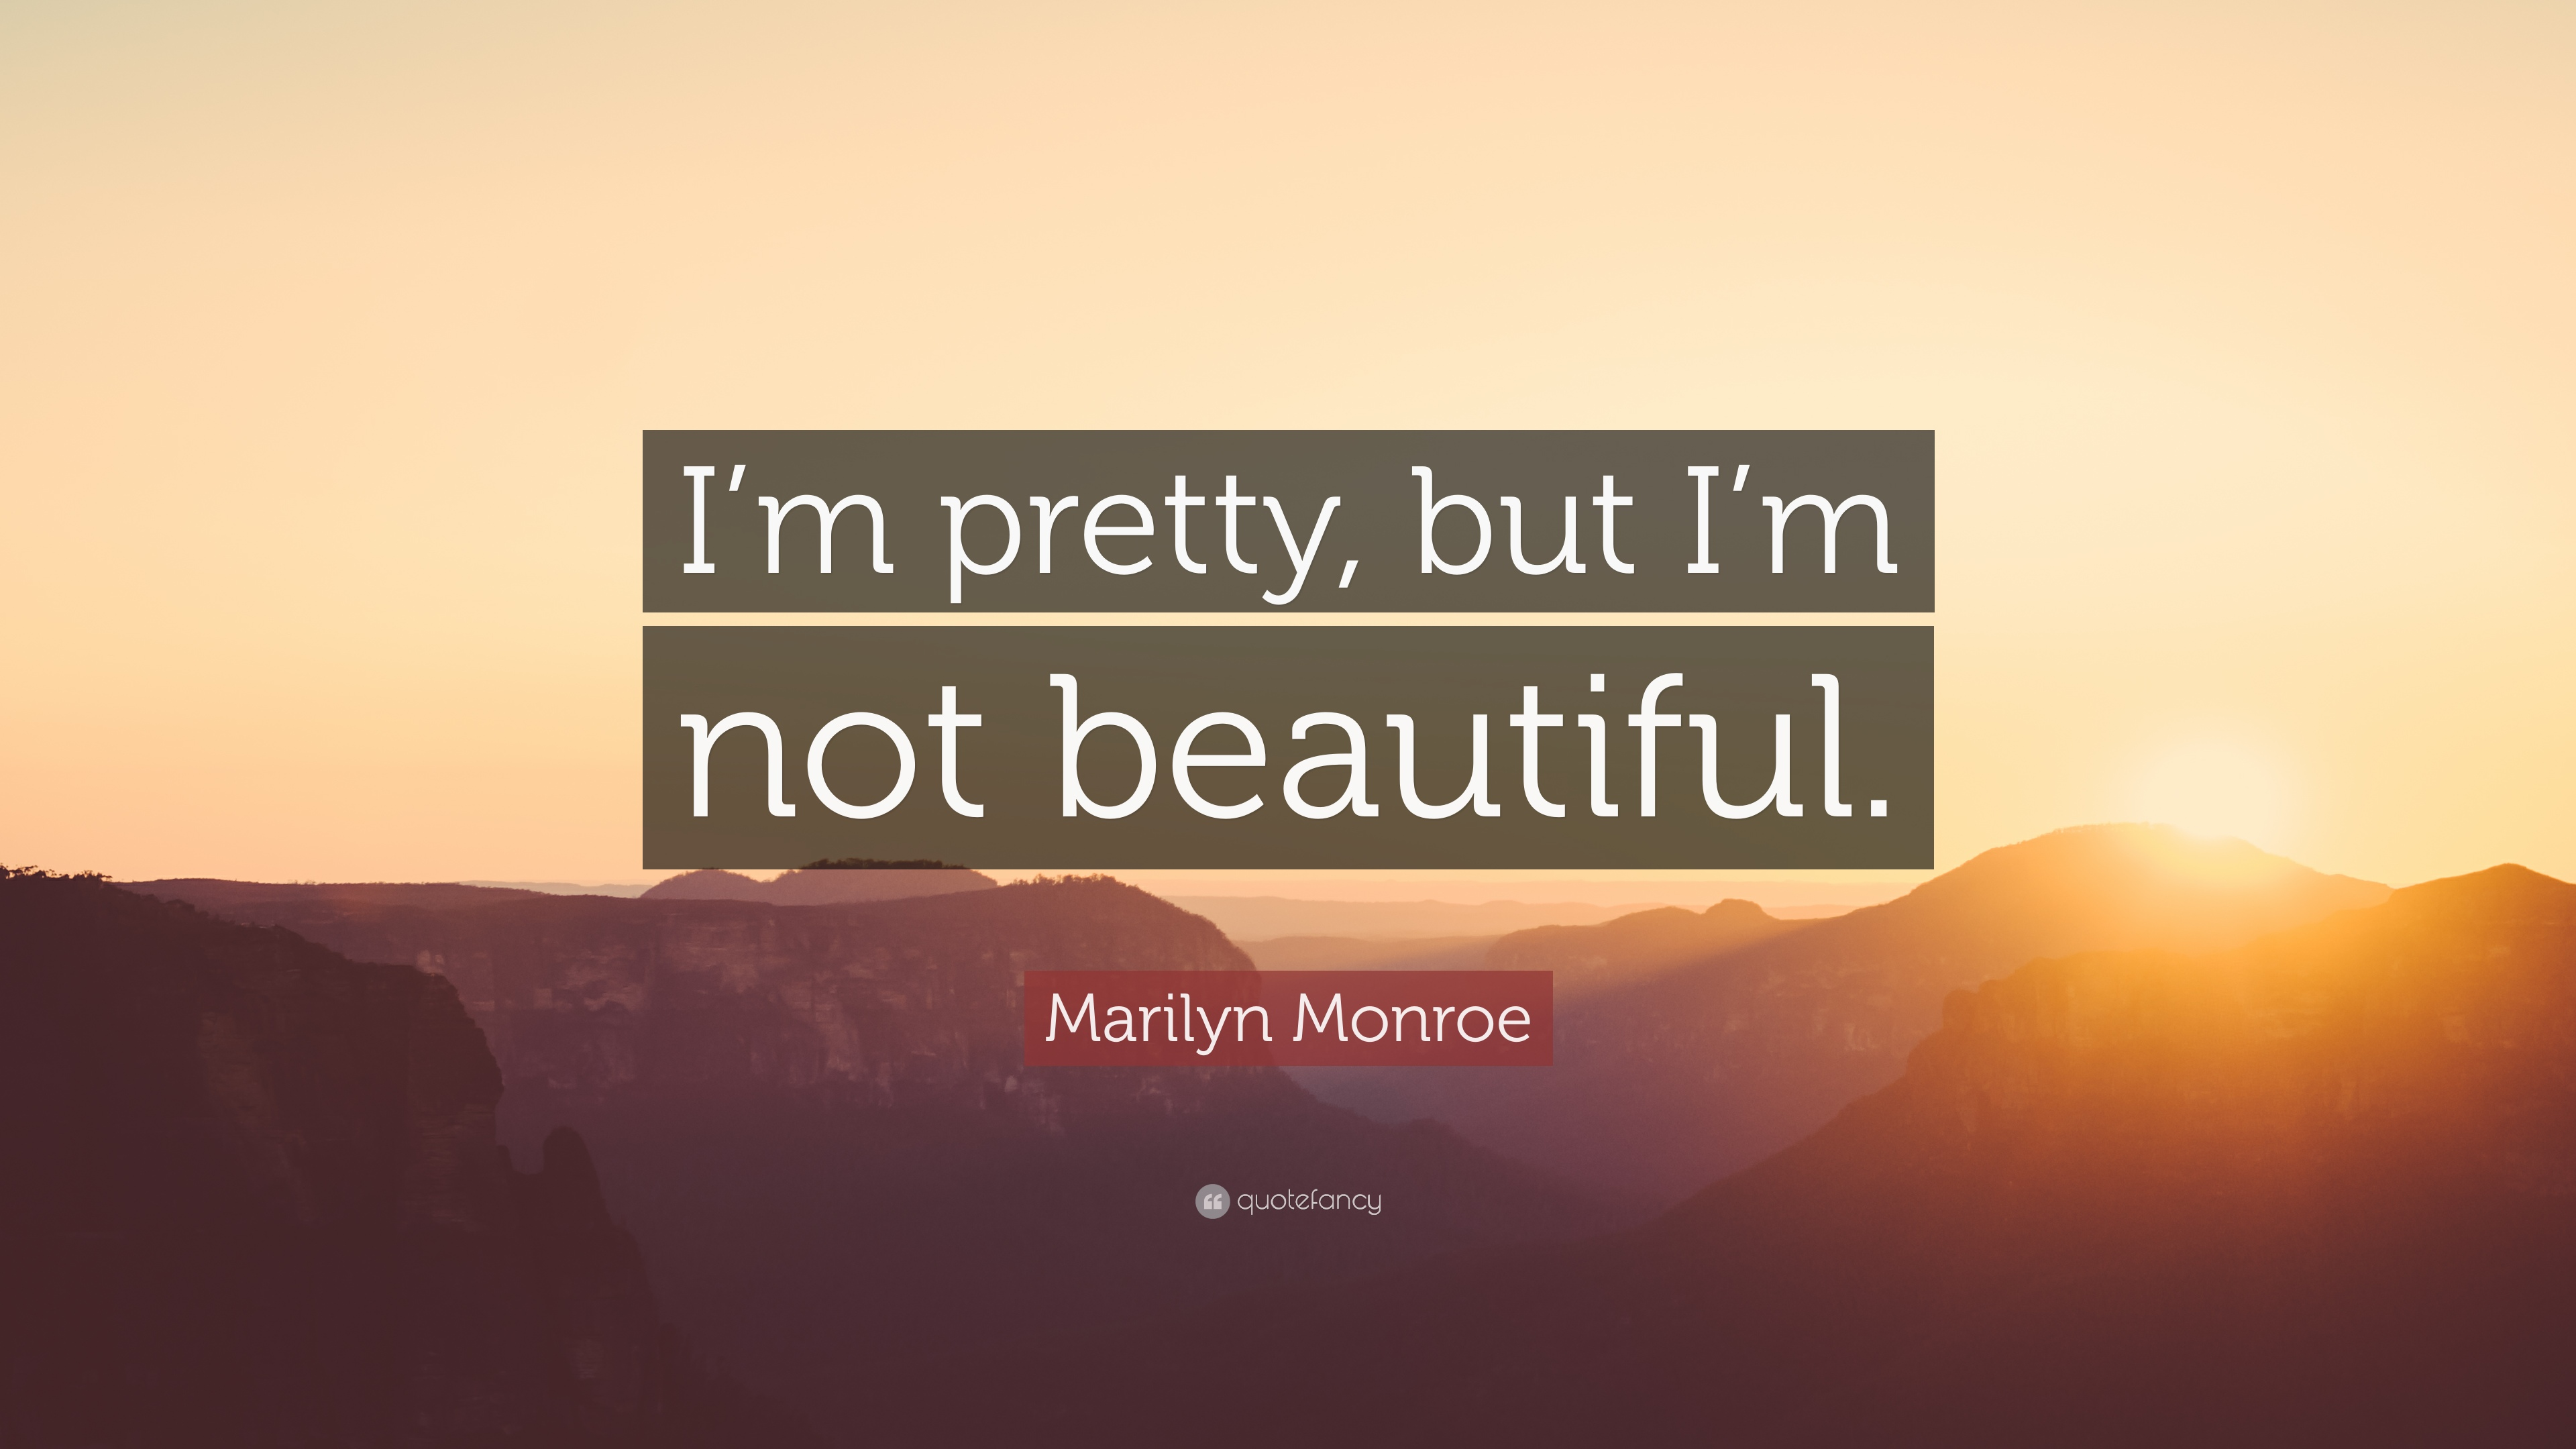 Image of: Heart Marilyn Monroe Quote im Pretty But Im Not Beautiful Quotefancy Marilyn Monroe Quote im Pretty But Im Not Beautiful 12